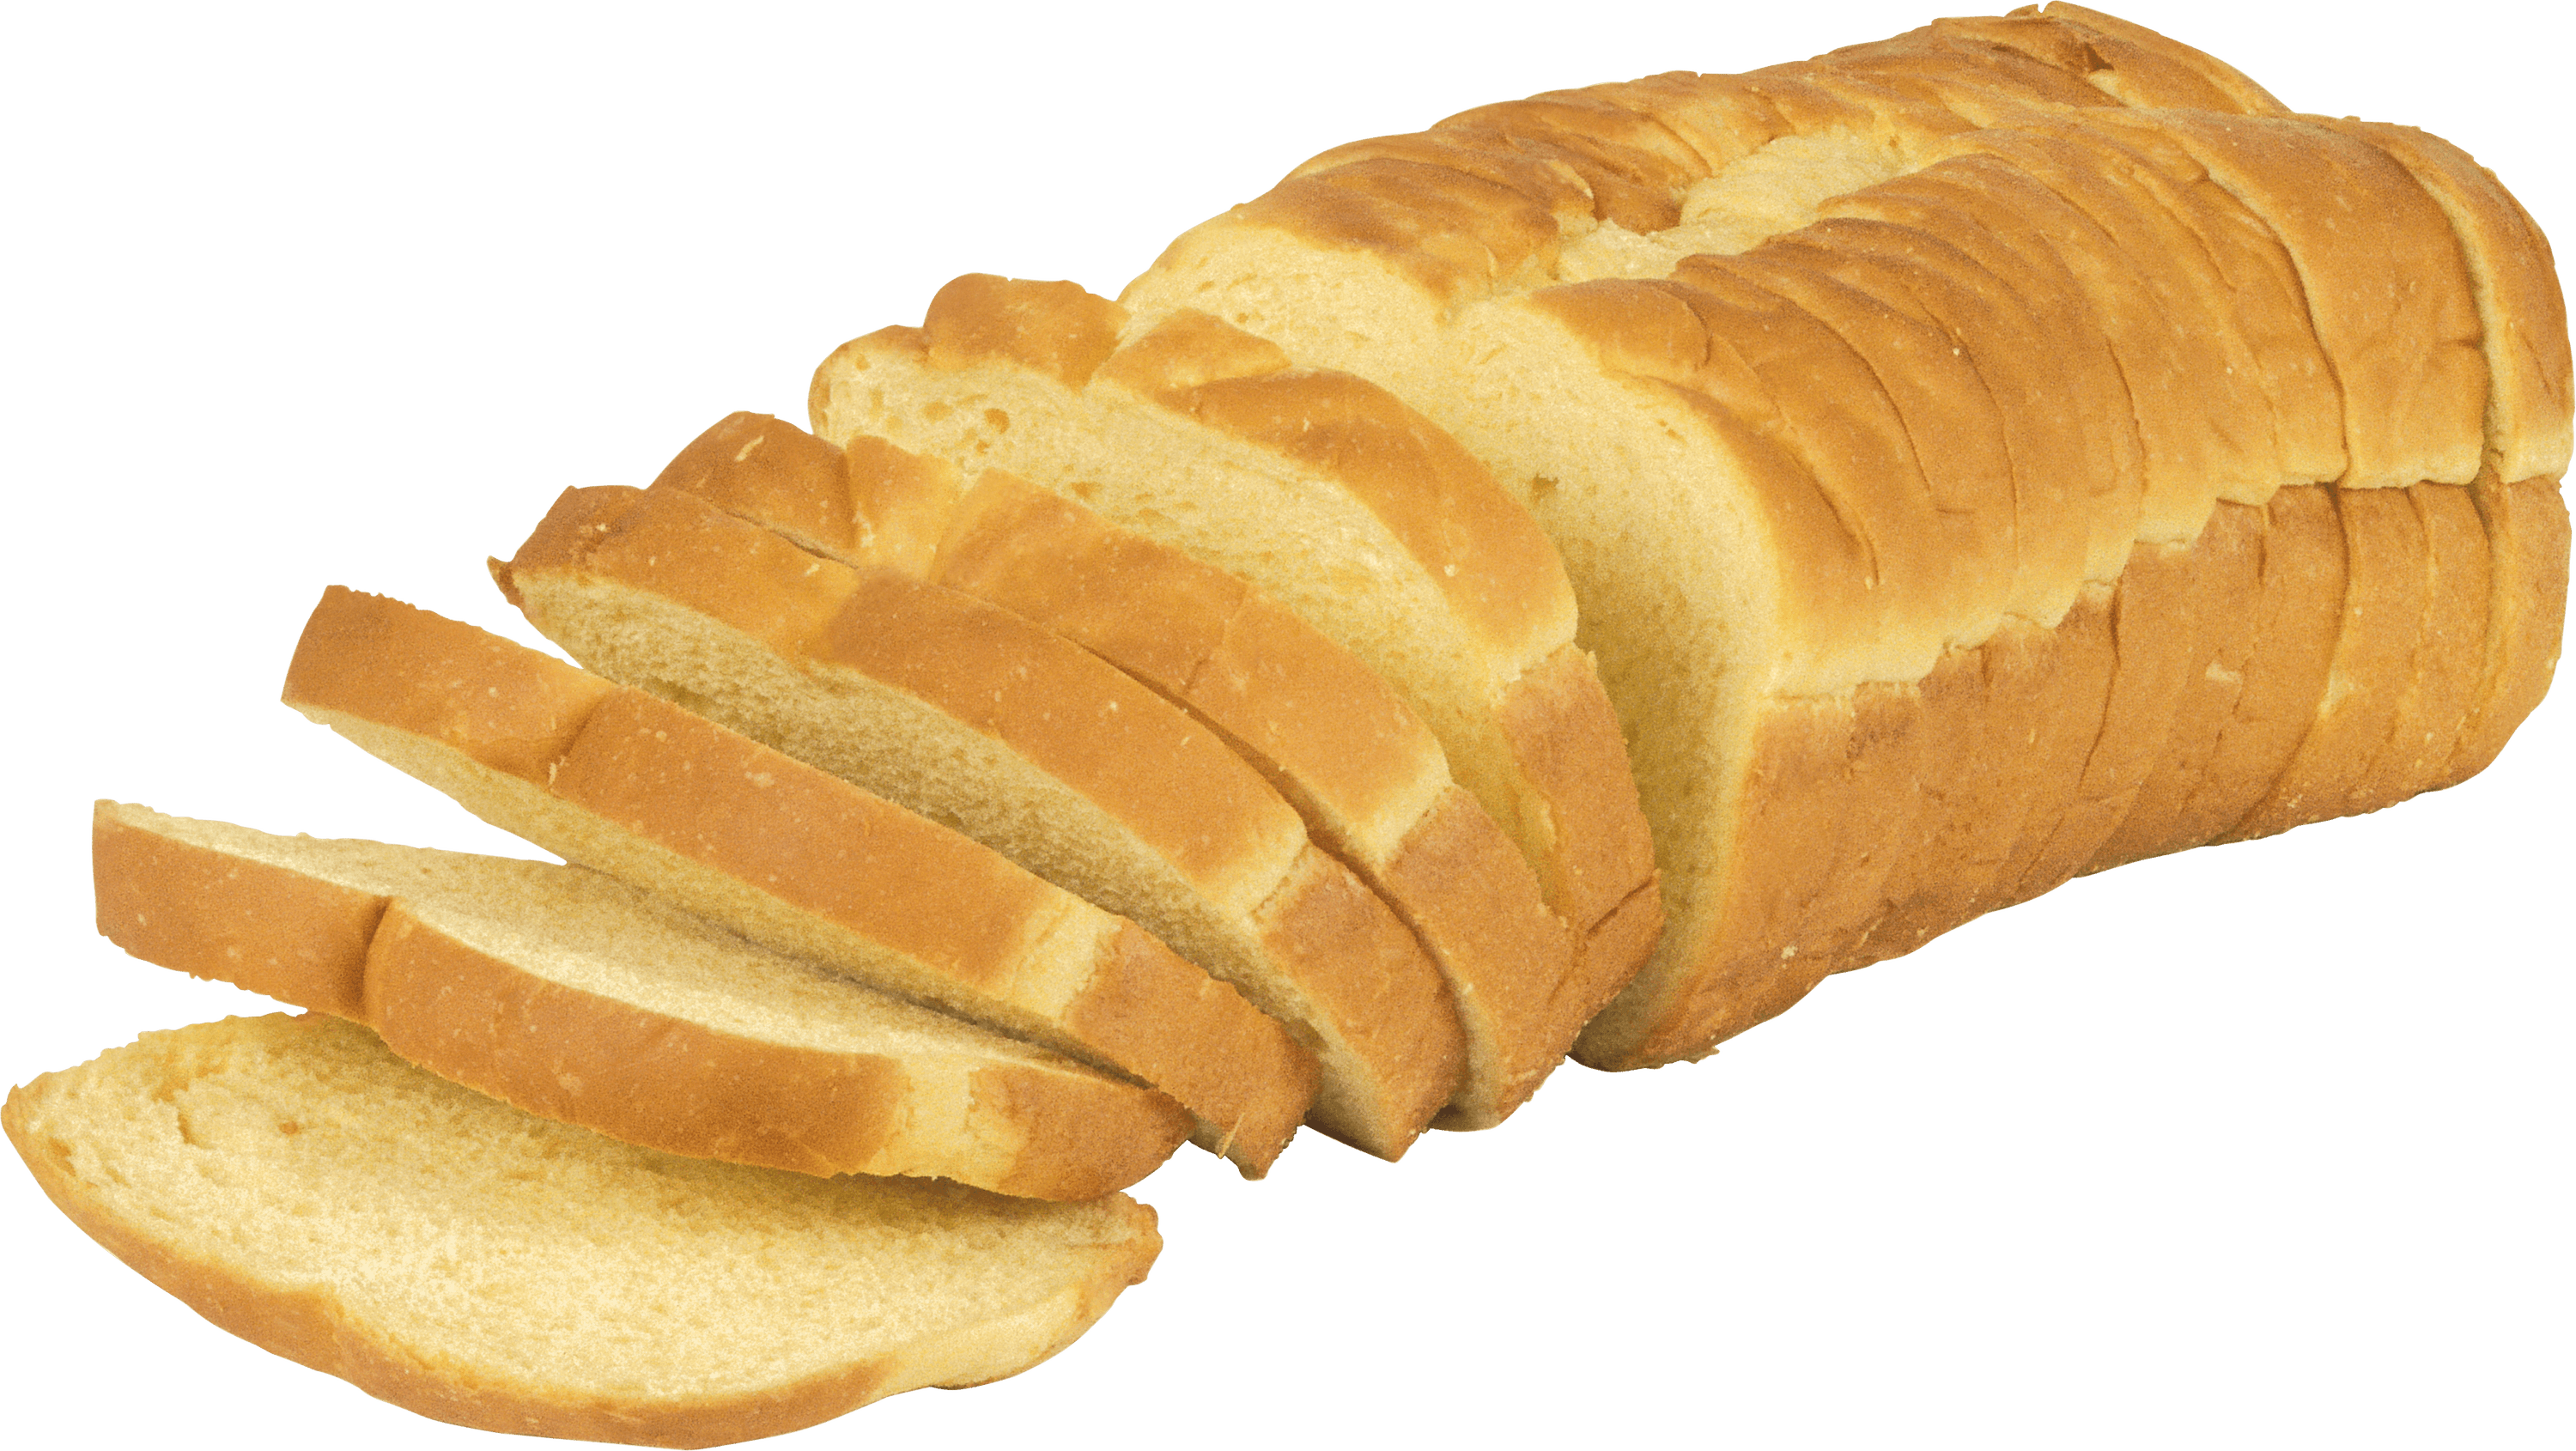 jpg royalty free library Transparent bread. Loaf of white png